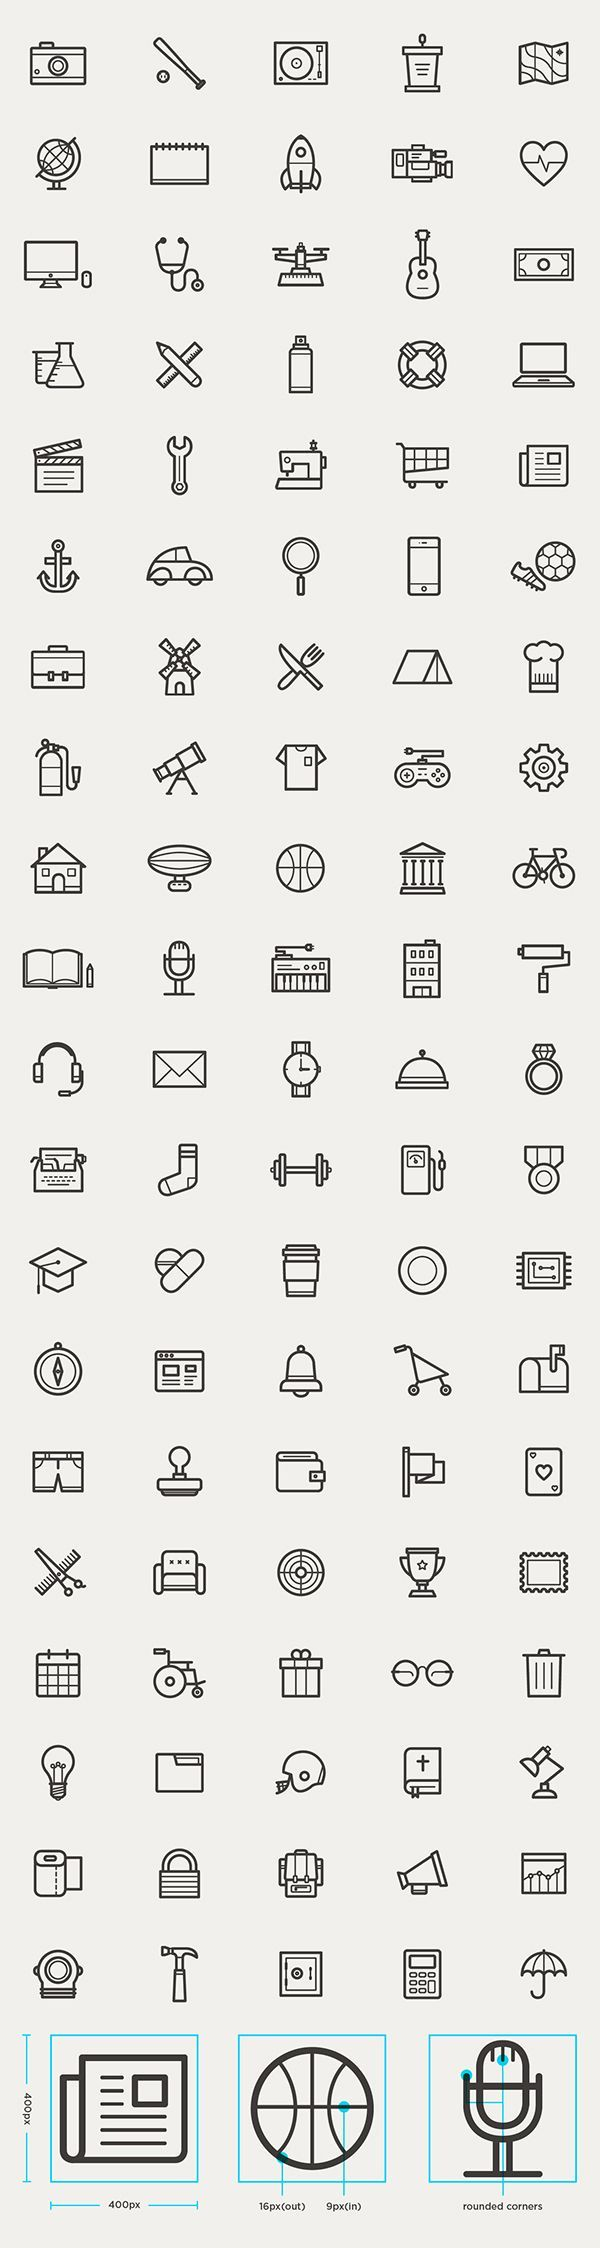 Free Outline Icons Set 95 Icons Dating Humor Dating Dating Quotes Dating Advice Dating Memes Dating Marriage Dating Adv Icon Design Icon Set Zeichnungen